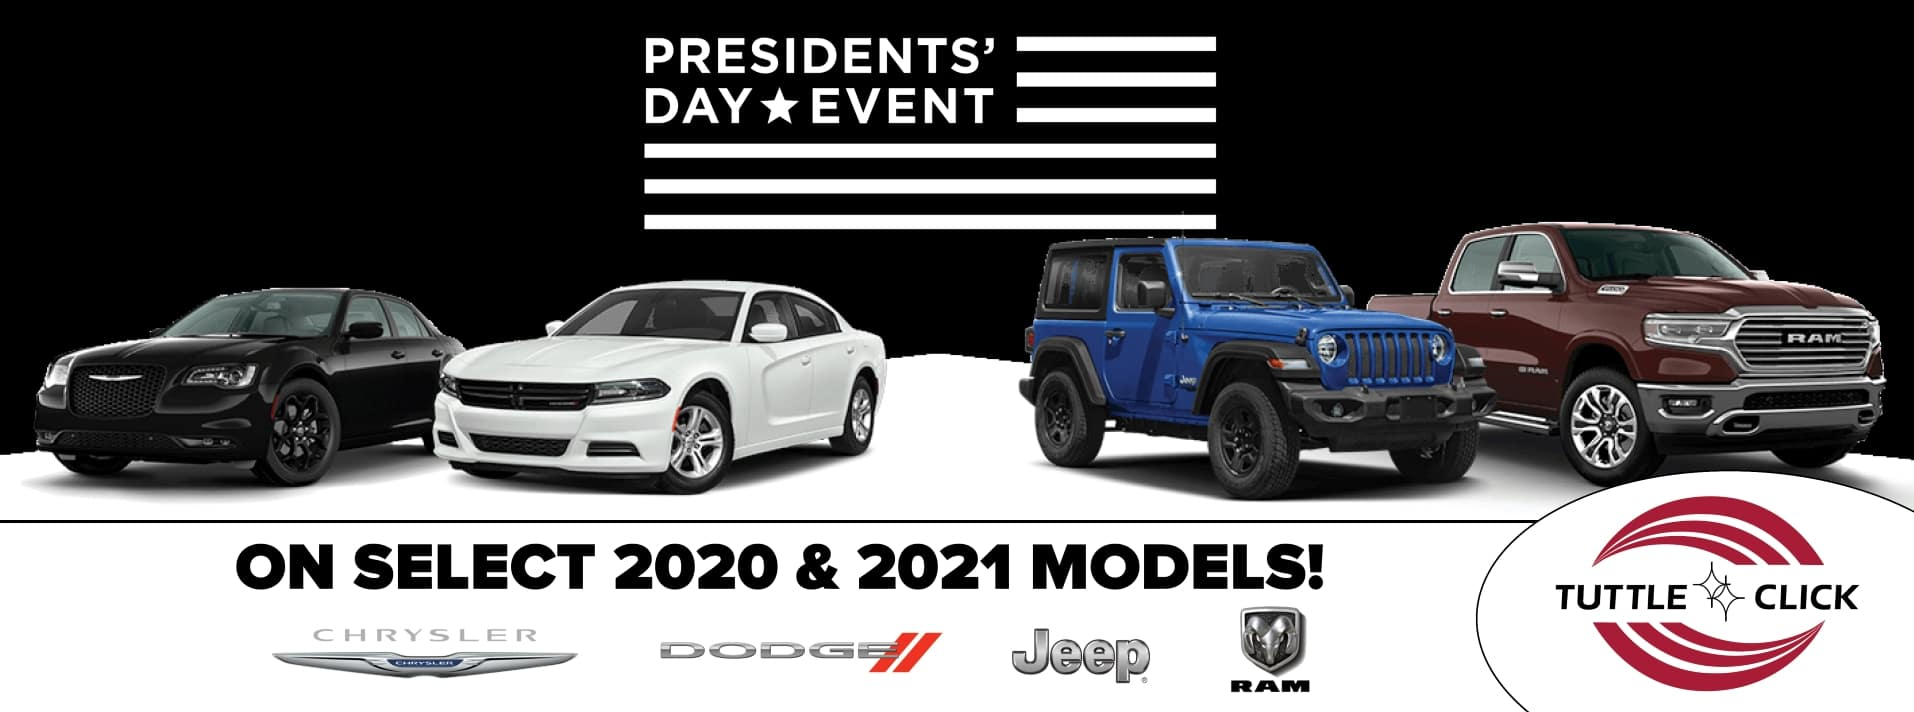 Presidents Day Web Banner Feb 2021